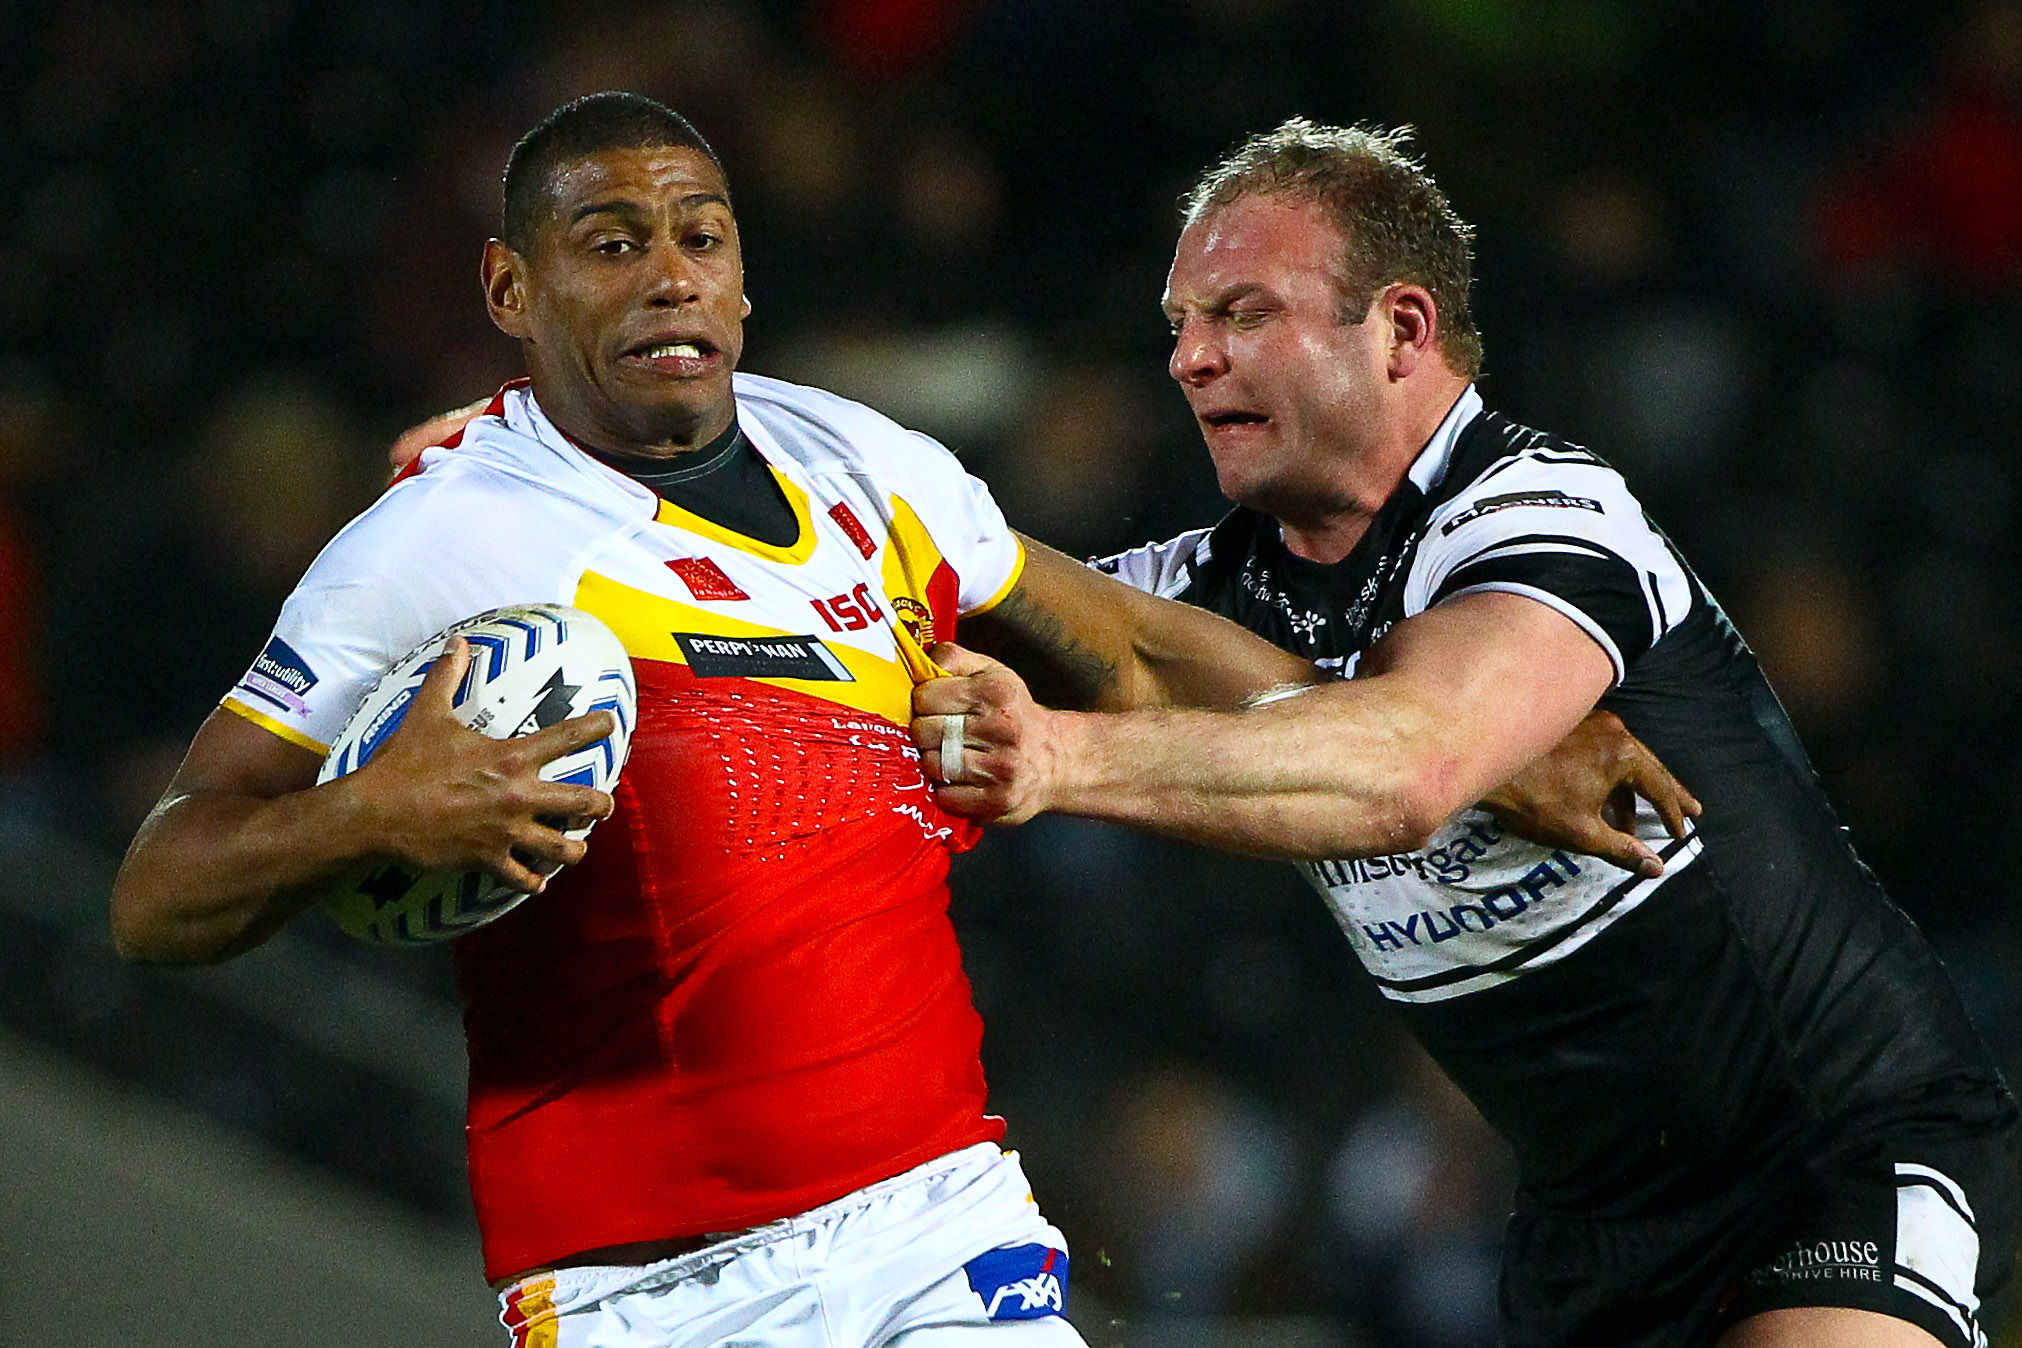 Leon Pryce has enjoyed a fine campaign at Catalan Dragons but will move to Hull FC next season